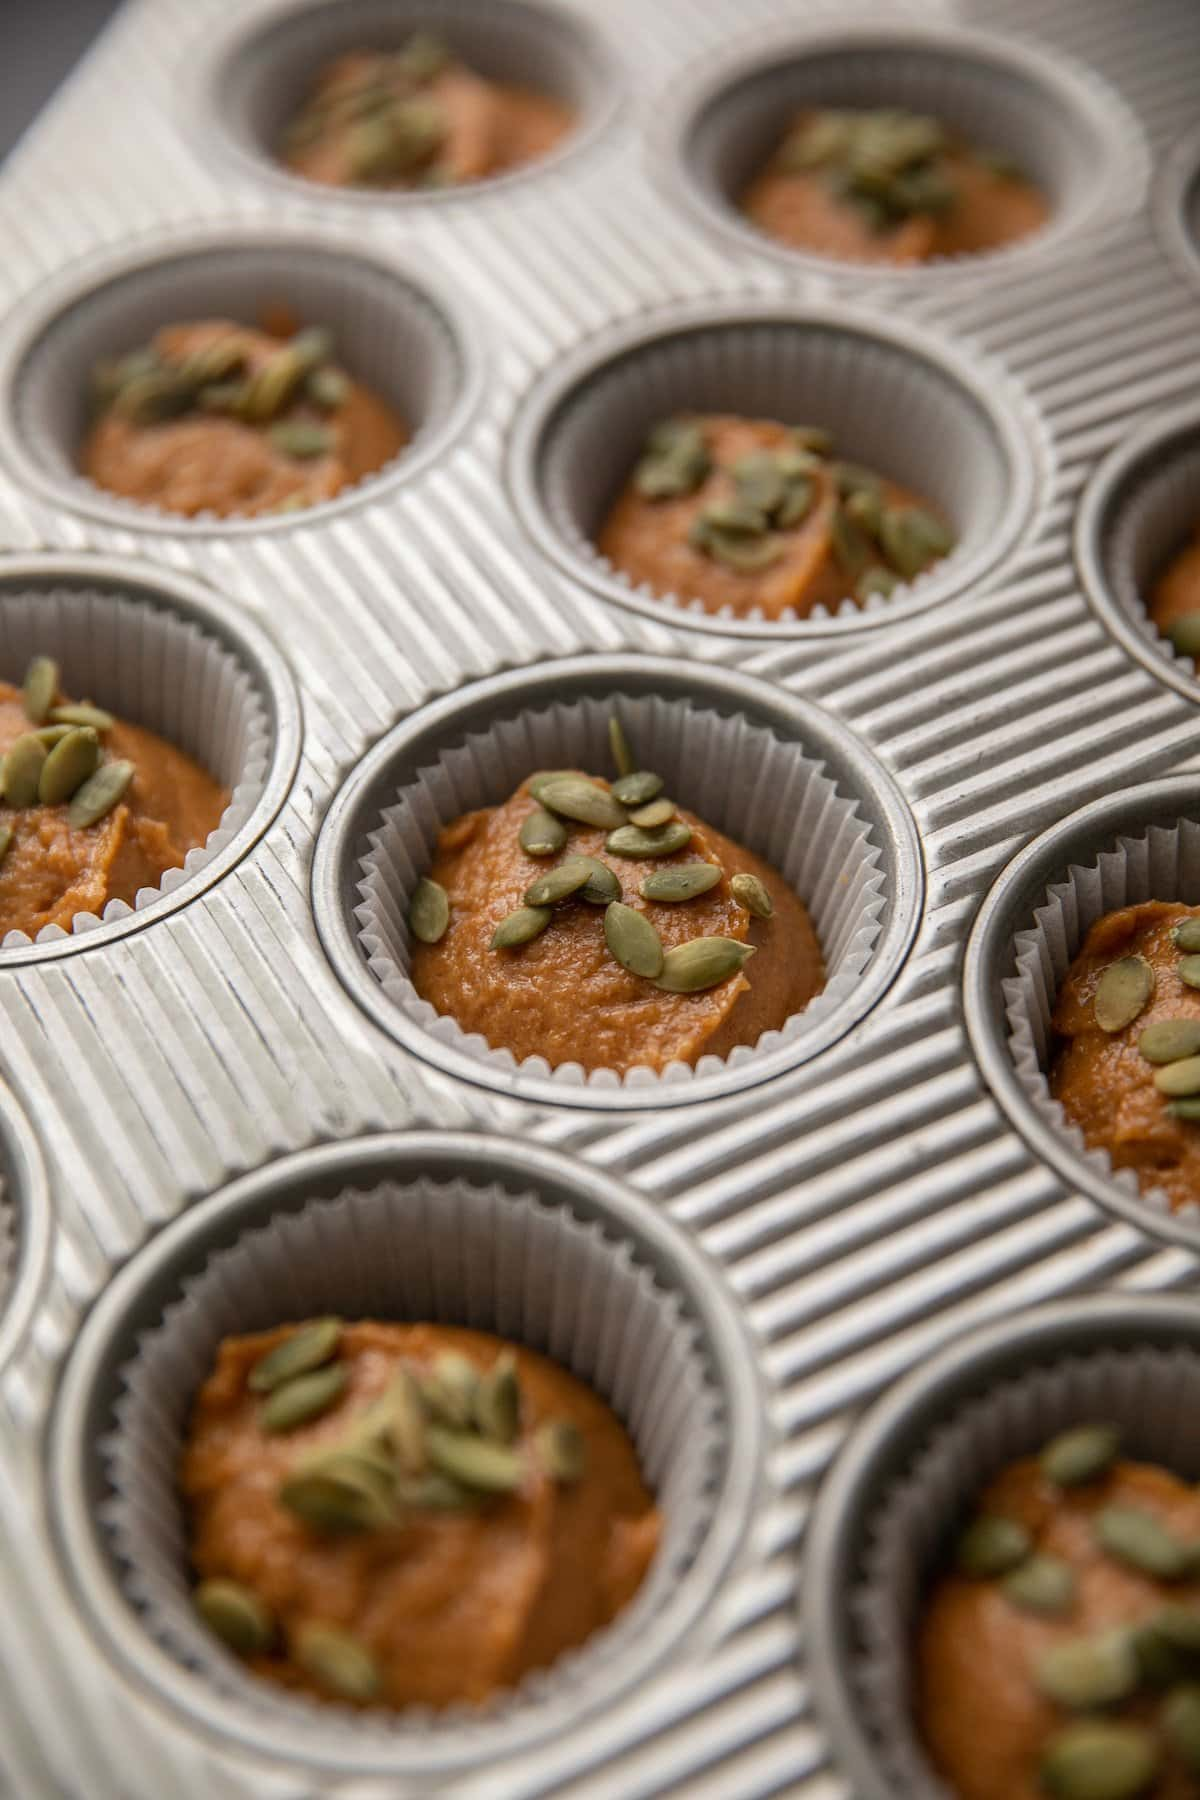 pumpkin muffin batter in muffin tins topped with green pepita seeds